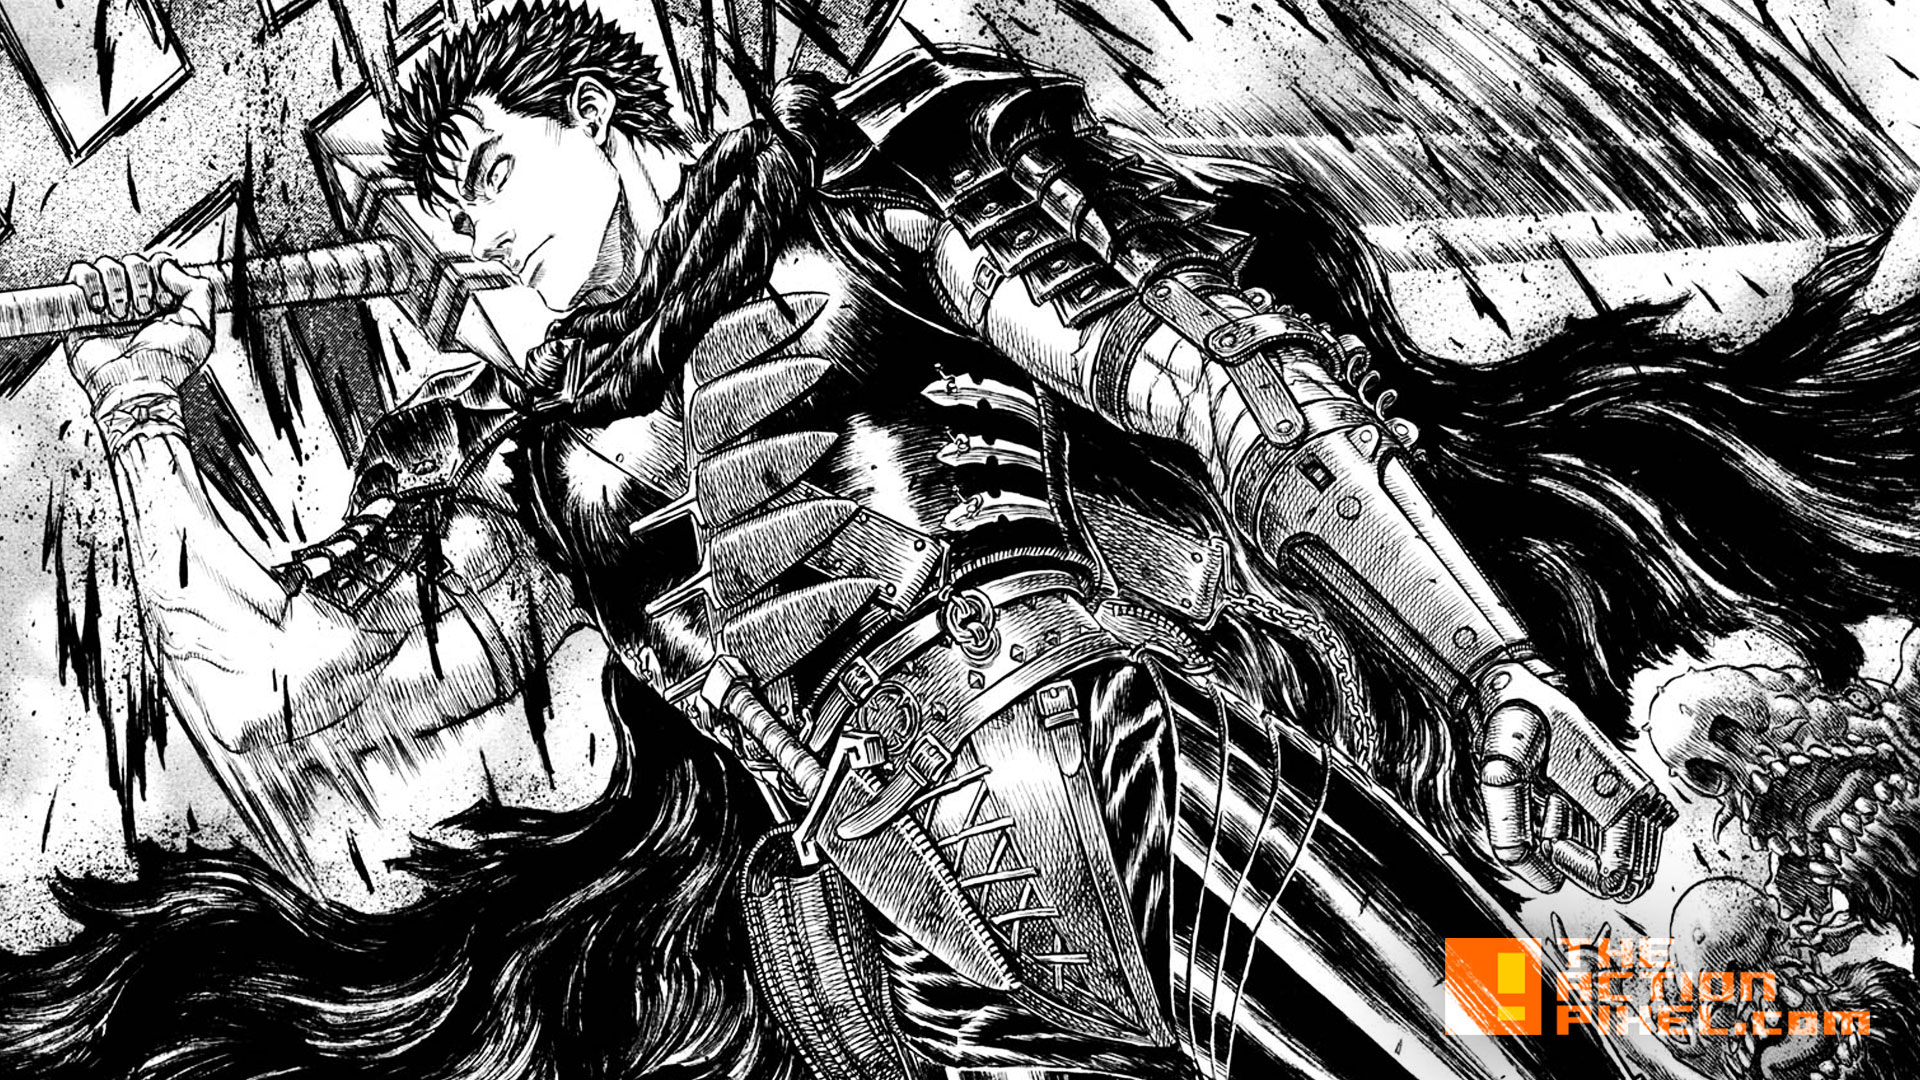 berserk. guts. black swordsman. @theactionpixel. the action pixel